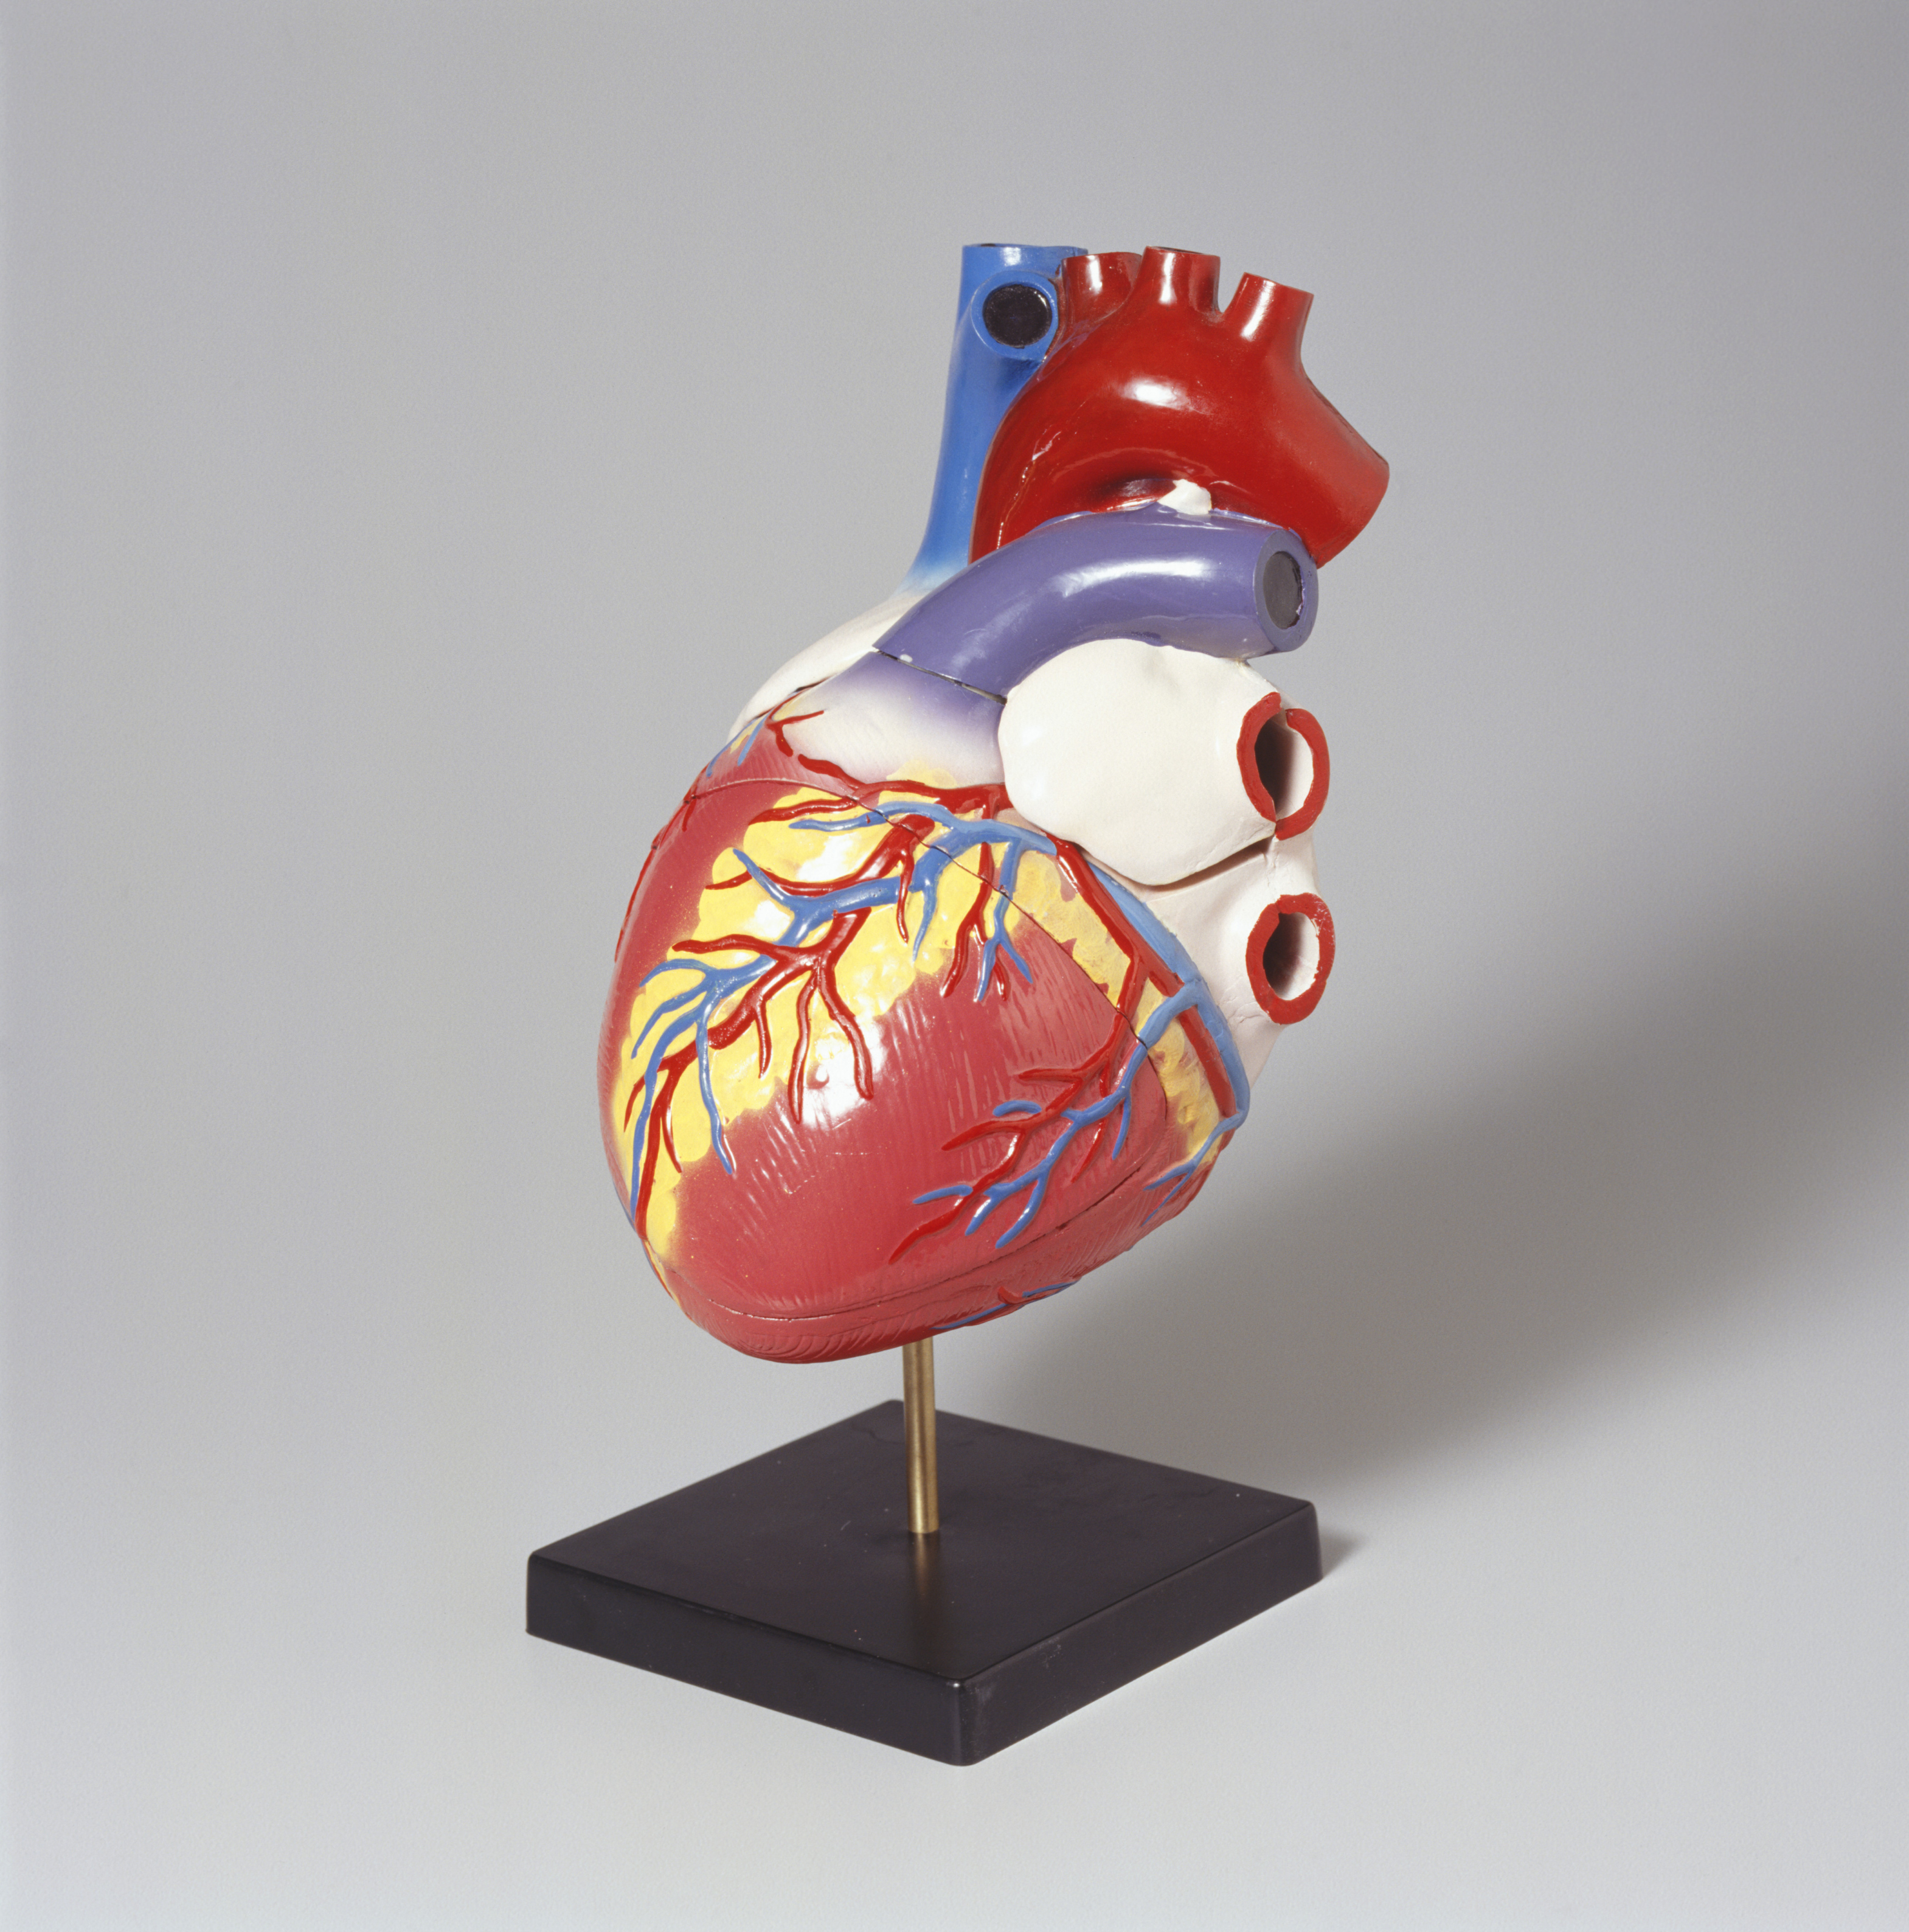 TAVR: Treating aortic stenosis without open heart surgery